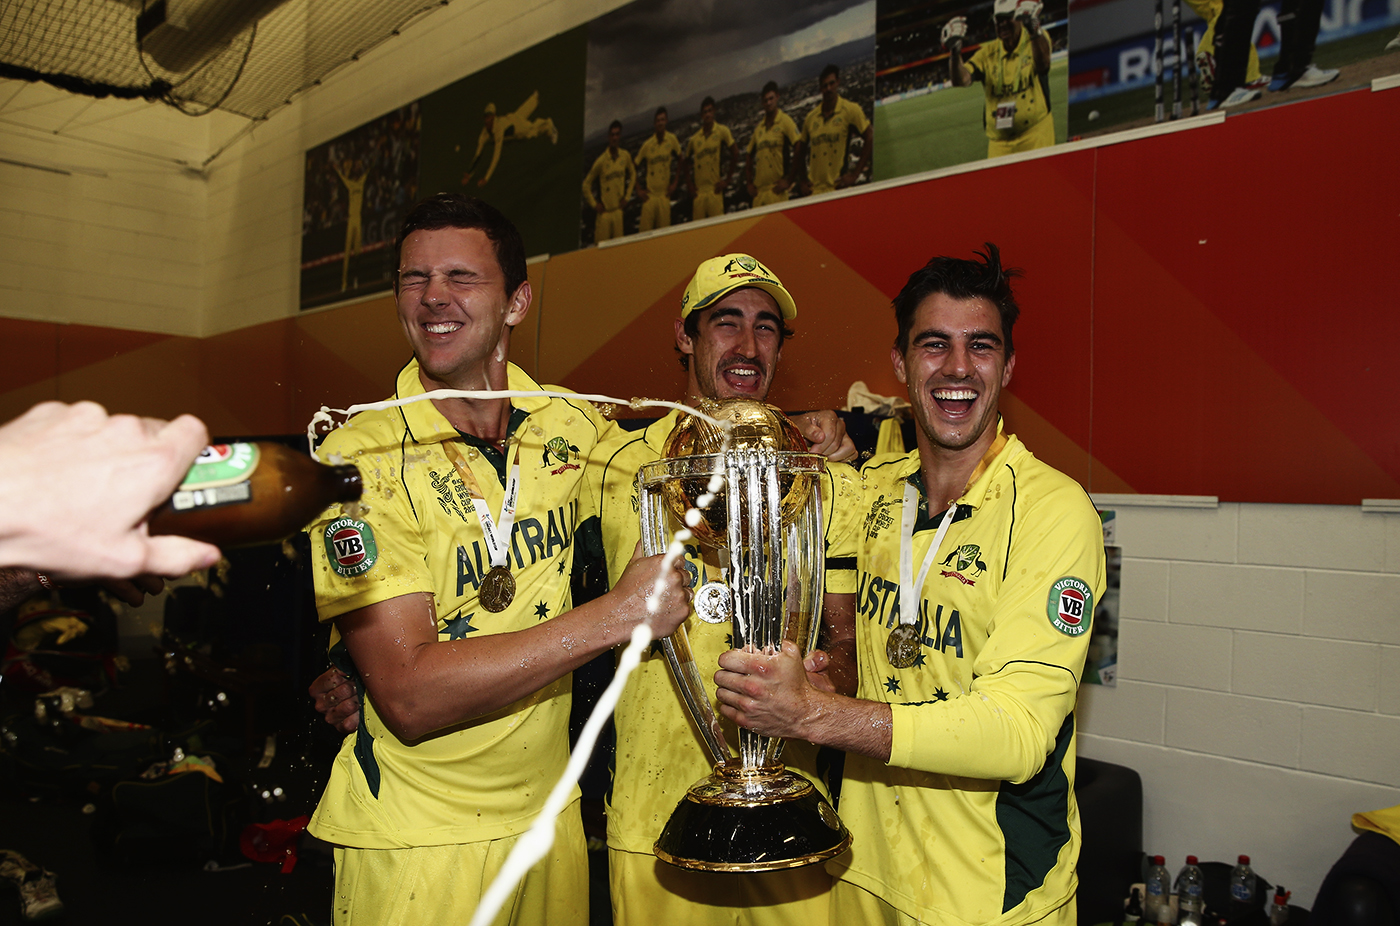 In eight World Cup matches in 2015, Starc took 22 wickets at 10.18